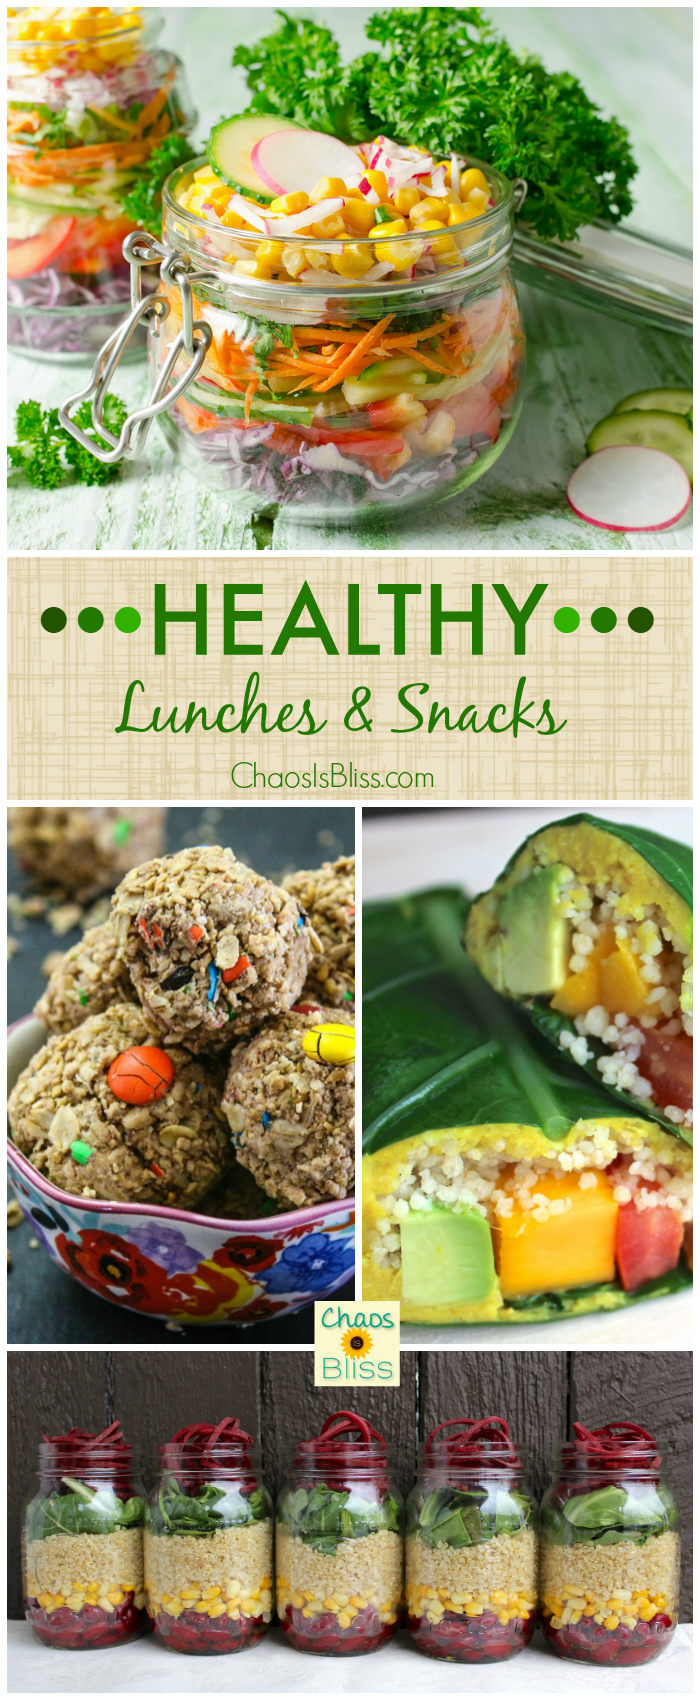 Whether you work from home or like to bring your lunch to work, here are small portion healthy lunches & snacks that will help you cut the calories!